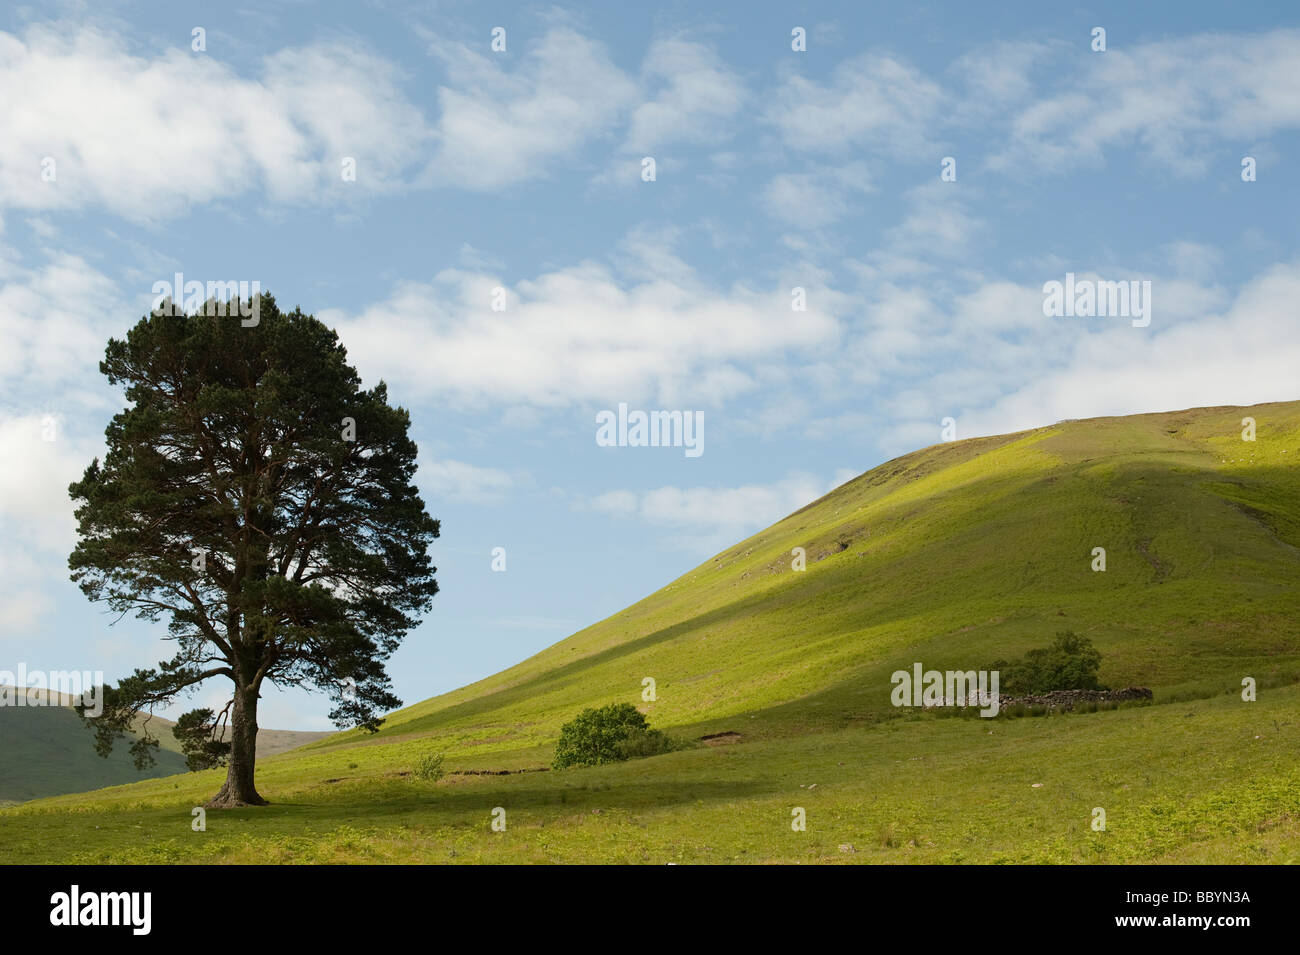 Pinus sylvestris. Single scots pine tree in the rolling hills of the scottish border countryside. Scotland - Stock Image